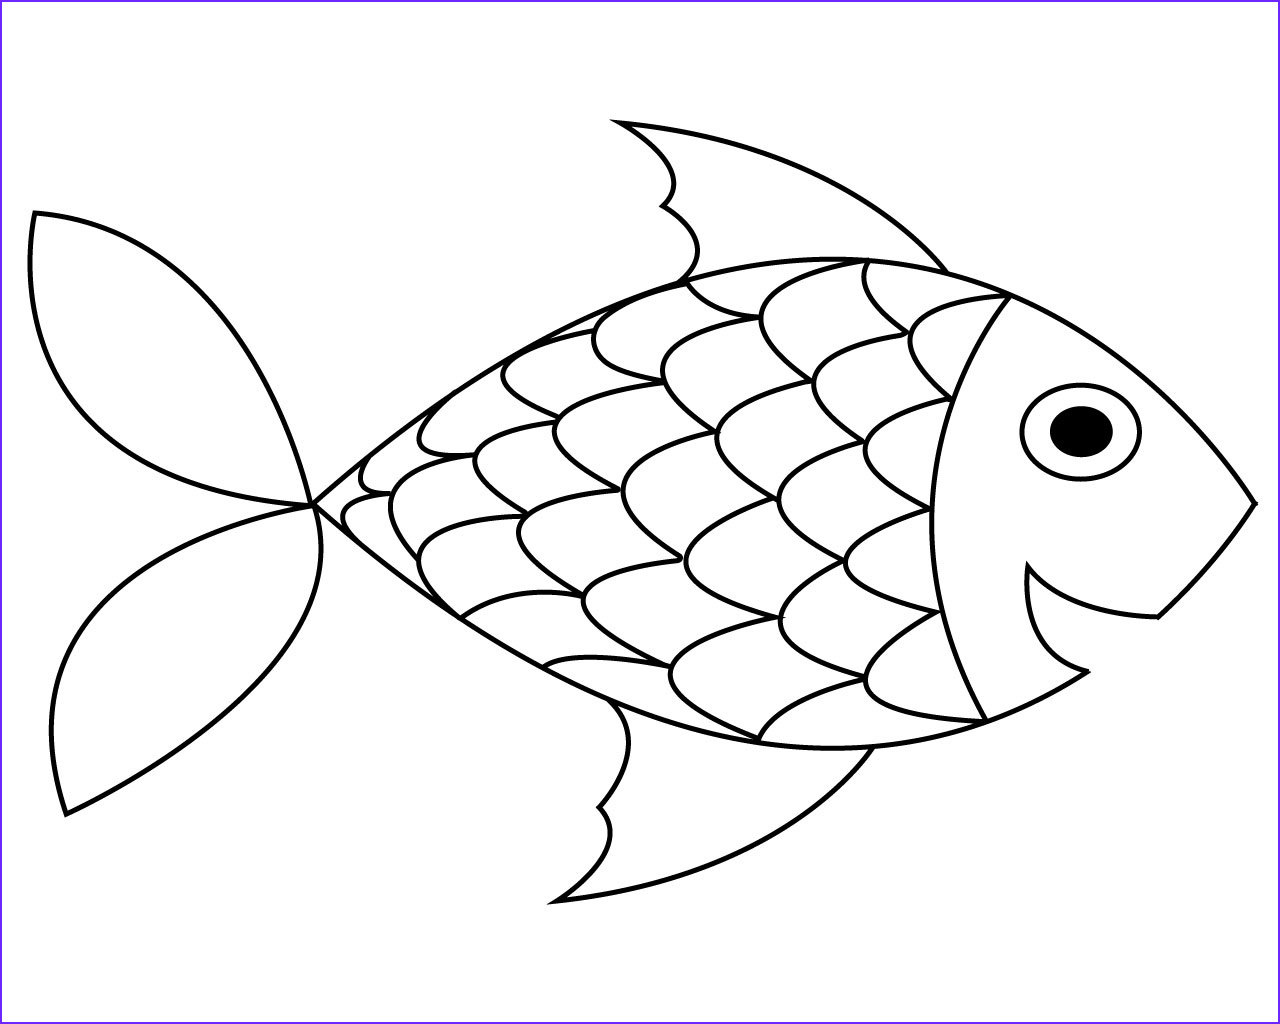 Fish Coloring Book Cool Images Free Printable Fish Coloring Pages for Your Lovely toddlers